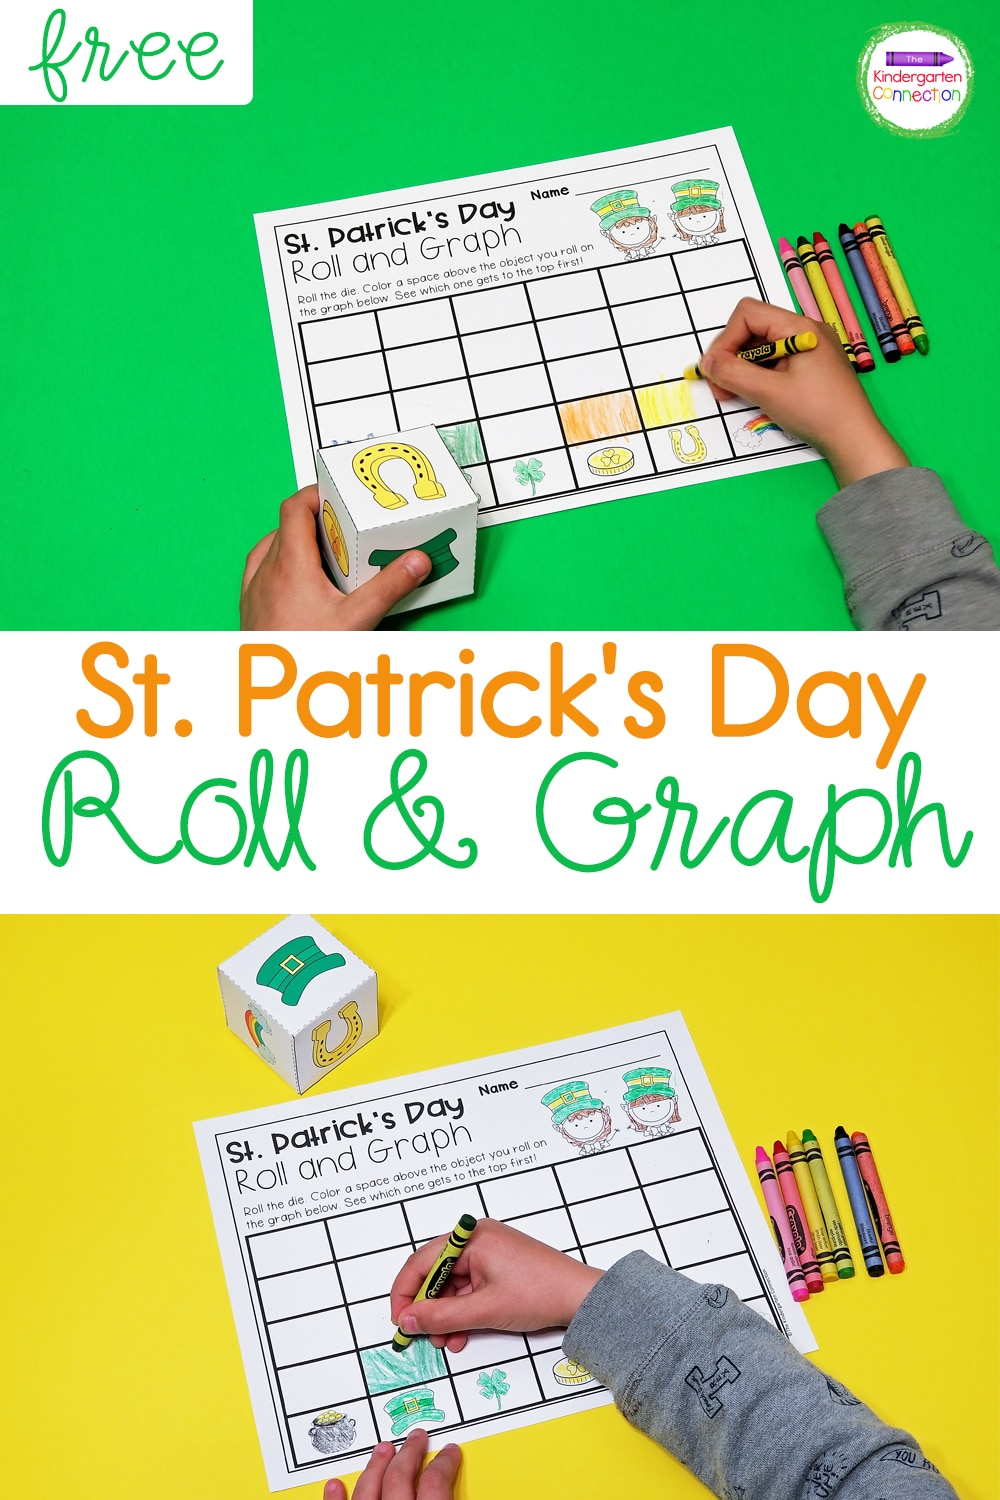 Grab this FREE Roll and Graph St. Patrick's Day Math Activity and use it in your math centers or small groups for some hands-on graphing fun!